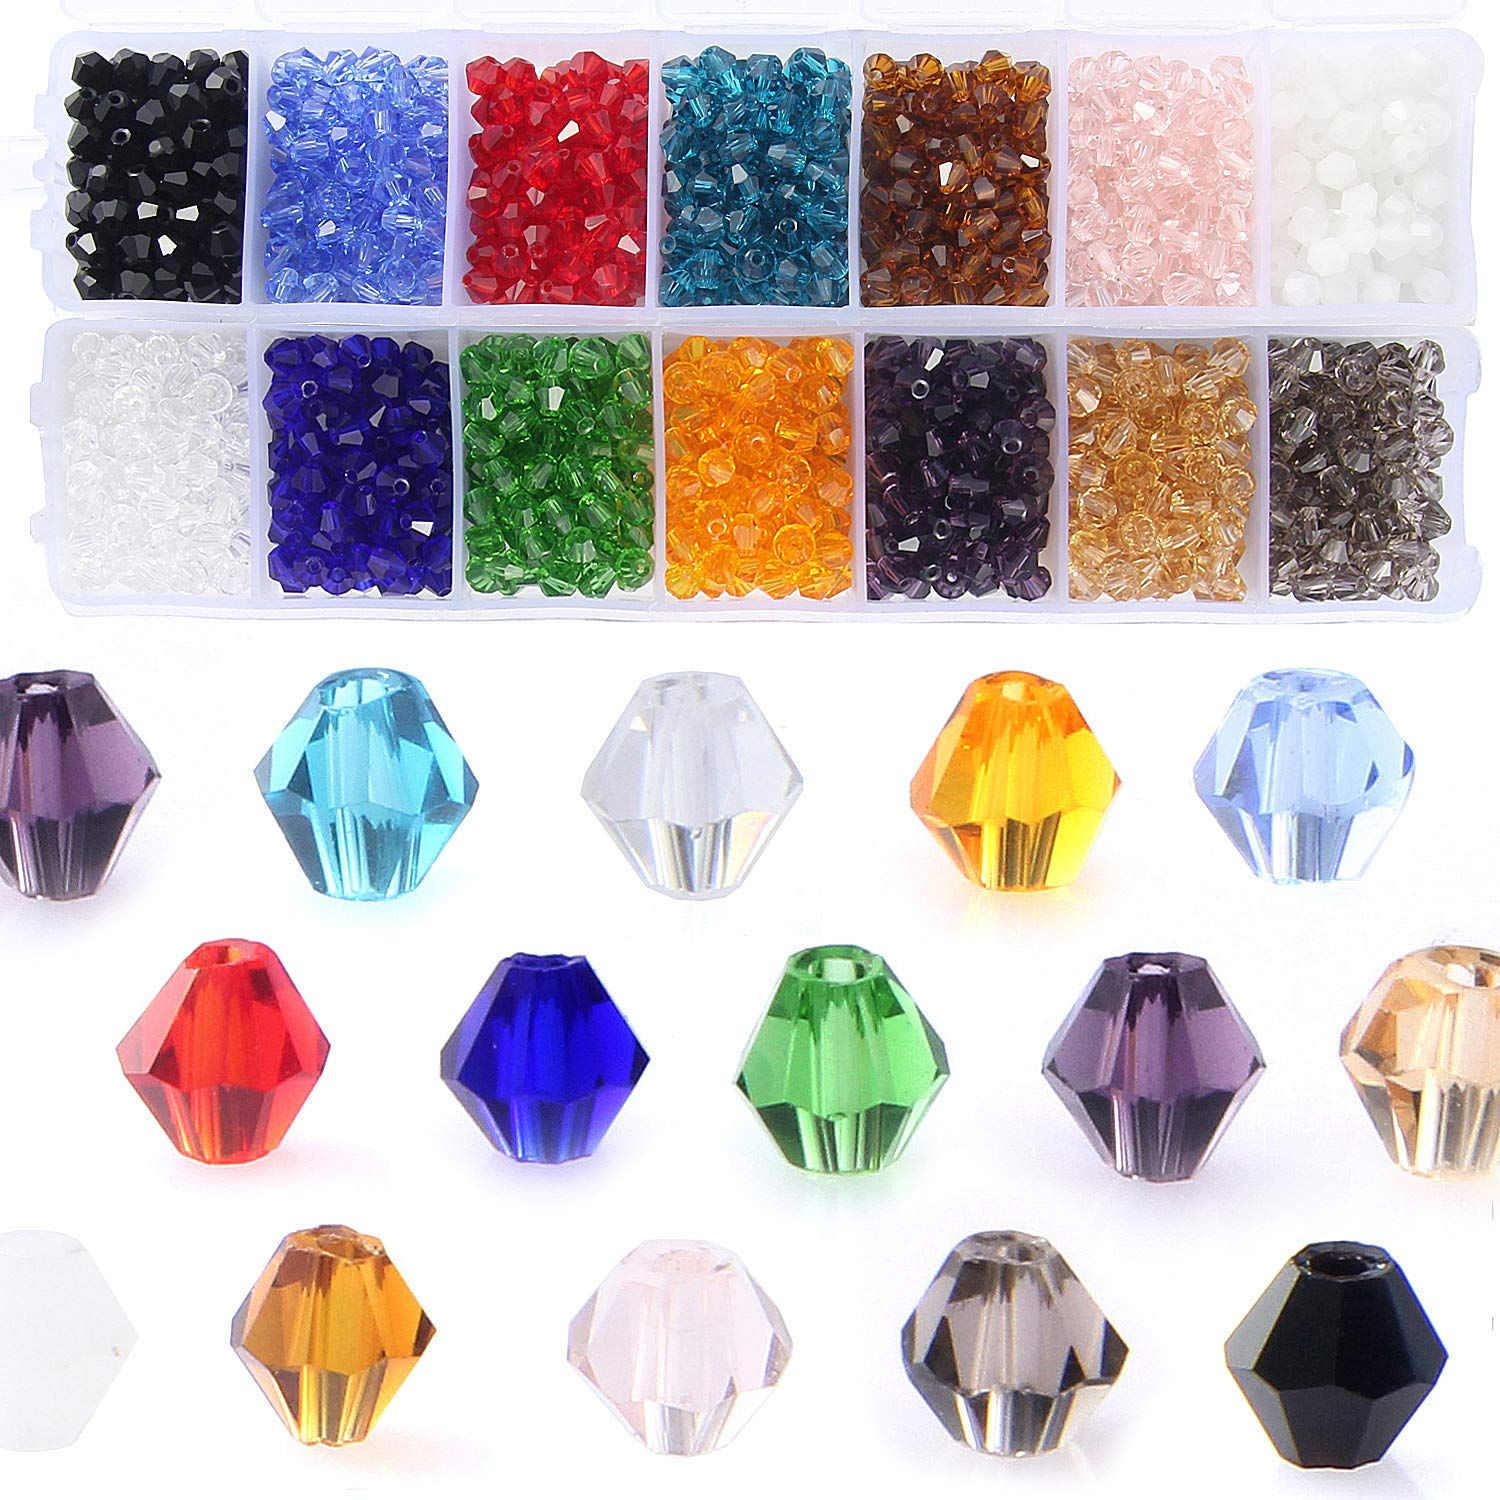 Bicone Crystal Beads Bulk Beaded-Wholease 4MM Czech Beads Mix Lot of 1400pcs Faceted Crystal Glass Beads Seed Beads for Jewelry Findings by ZHUBI